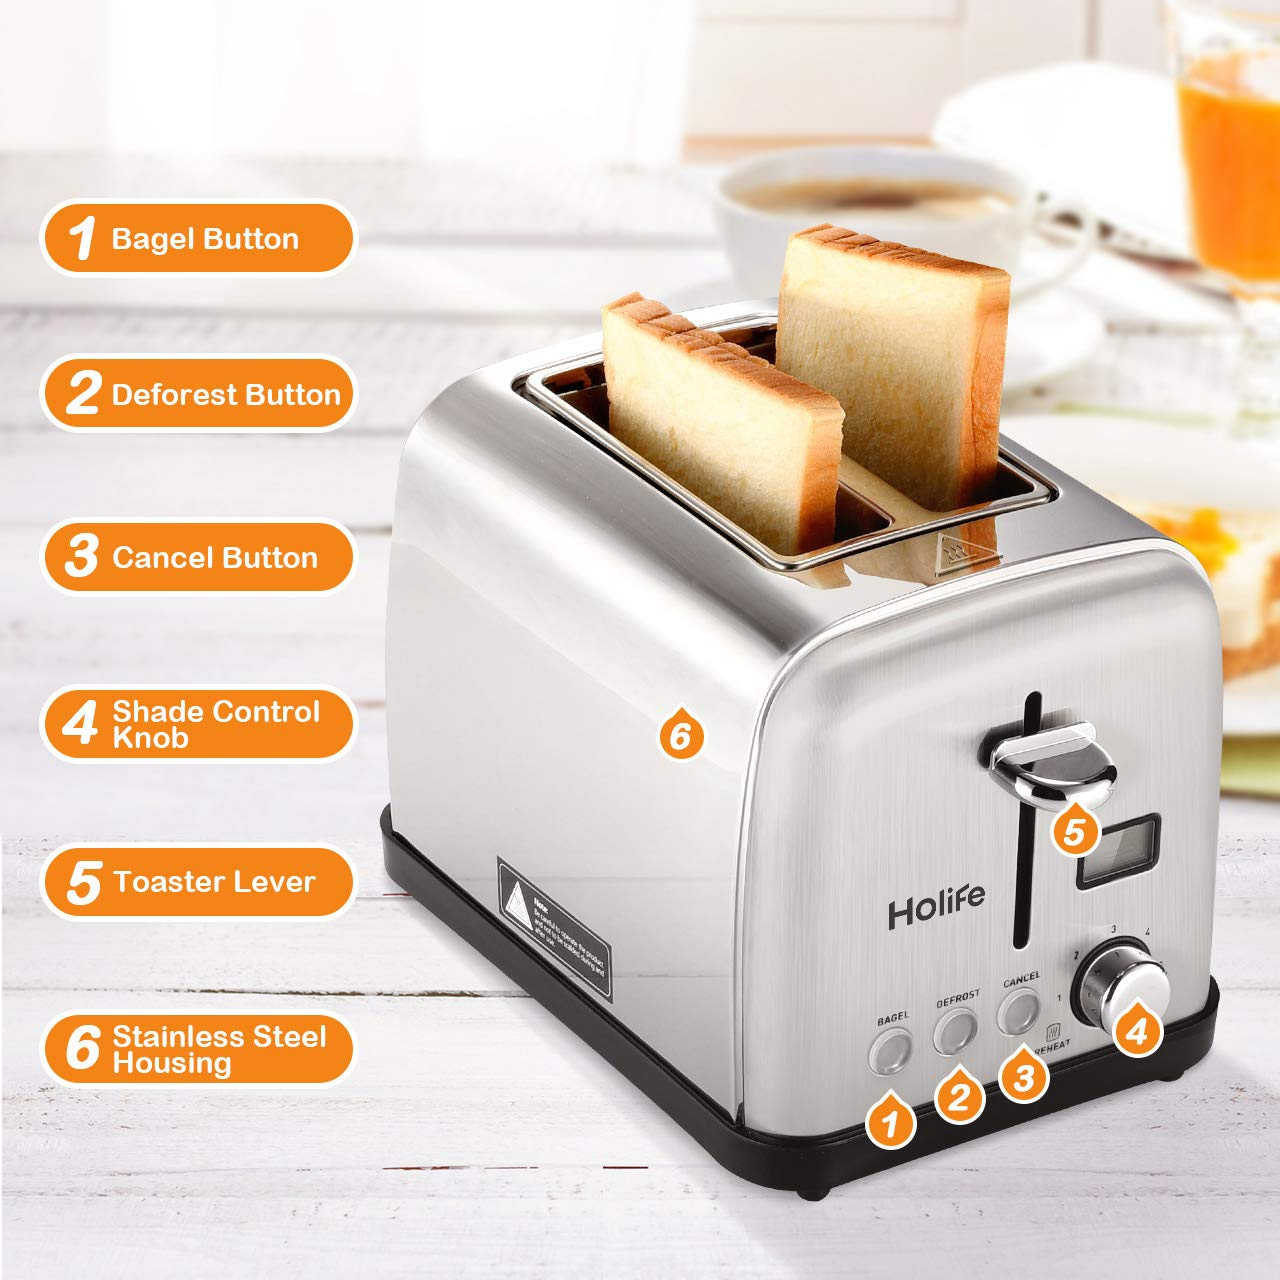 2 Slice Toaster LCD Timer Display Bagel Toaster HOLIFE Stainless Steel Toaster 6 Bread Shade Settings, Bagel//Defrost//Reheat//Cancel Function, Wide Slots, Removable Crumb Tray, 900W, Silver